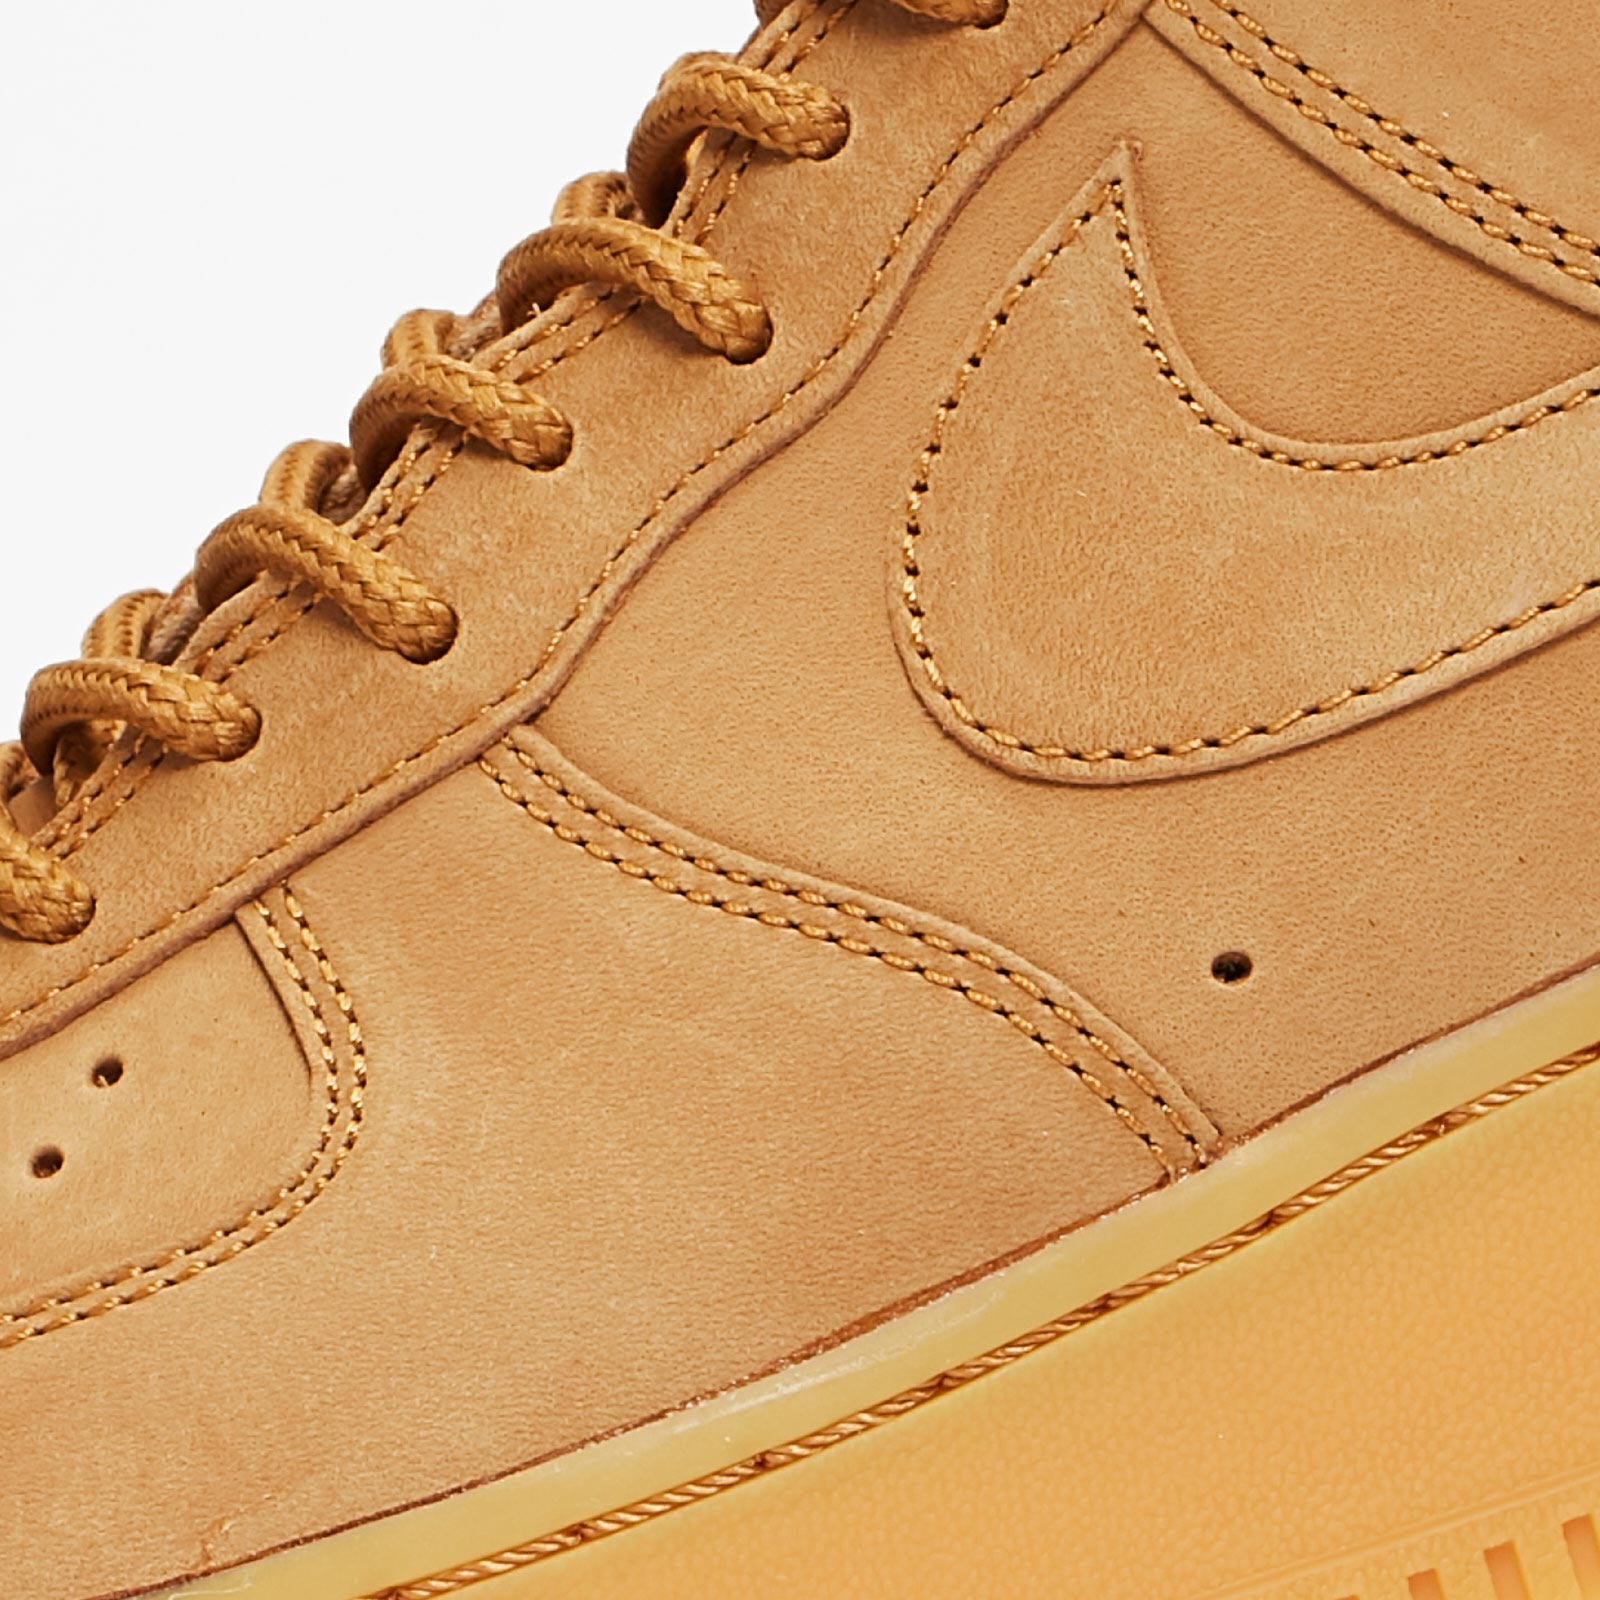 Nike Air Force 1 High Flax Wheat Almost New Us 8.5